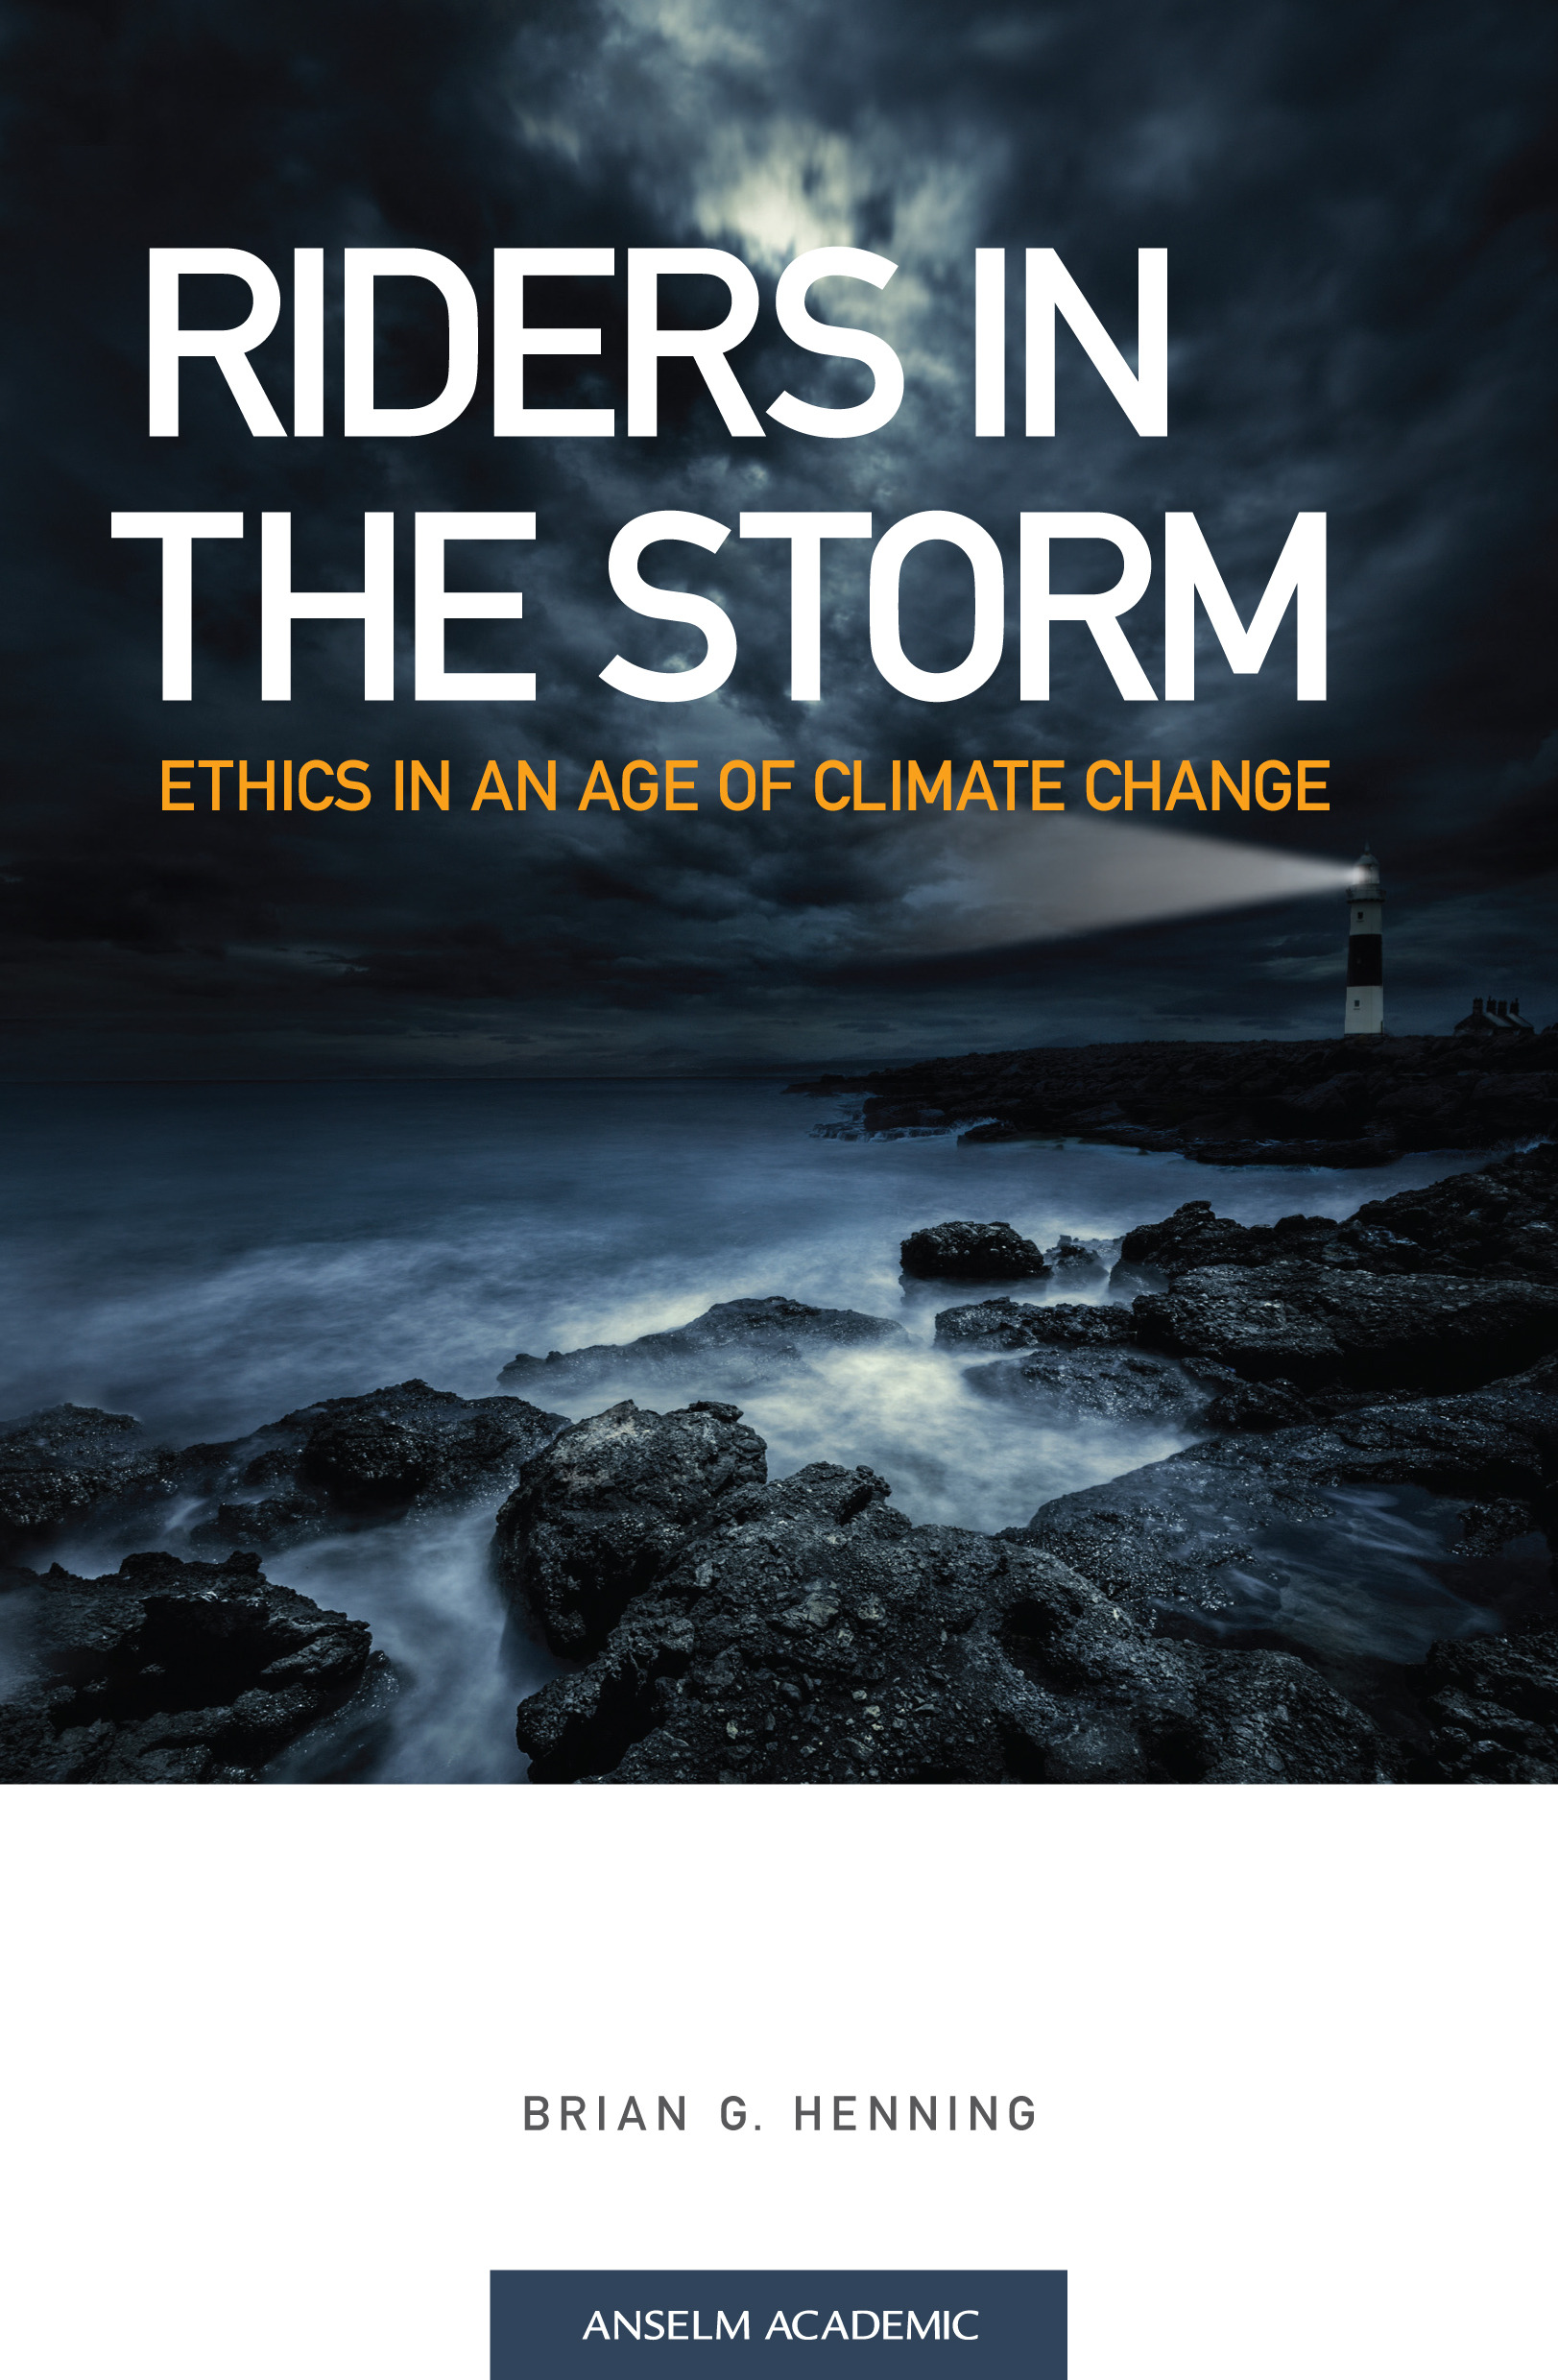 Riders in the Storm: Ethics in an Age of Climate Change